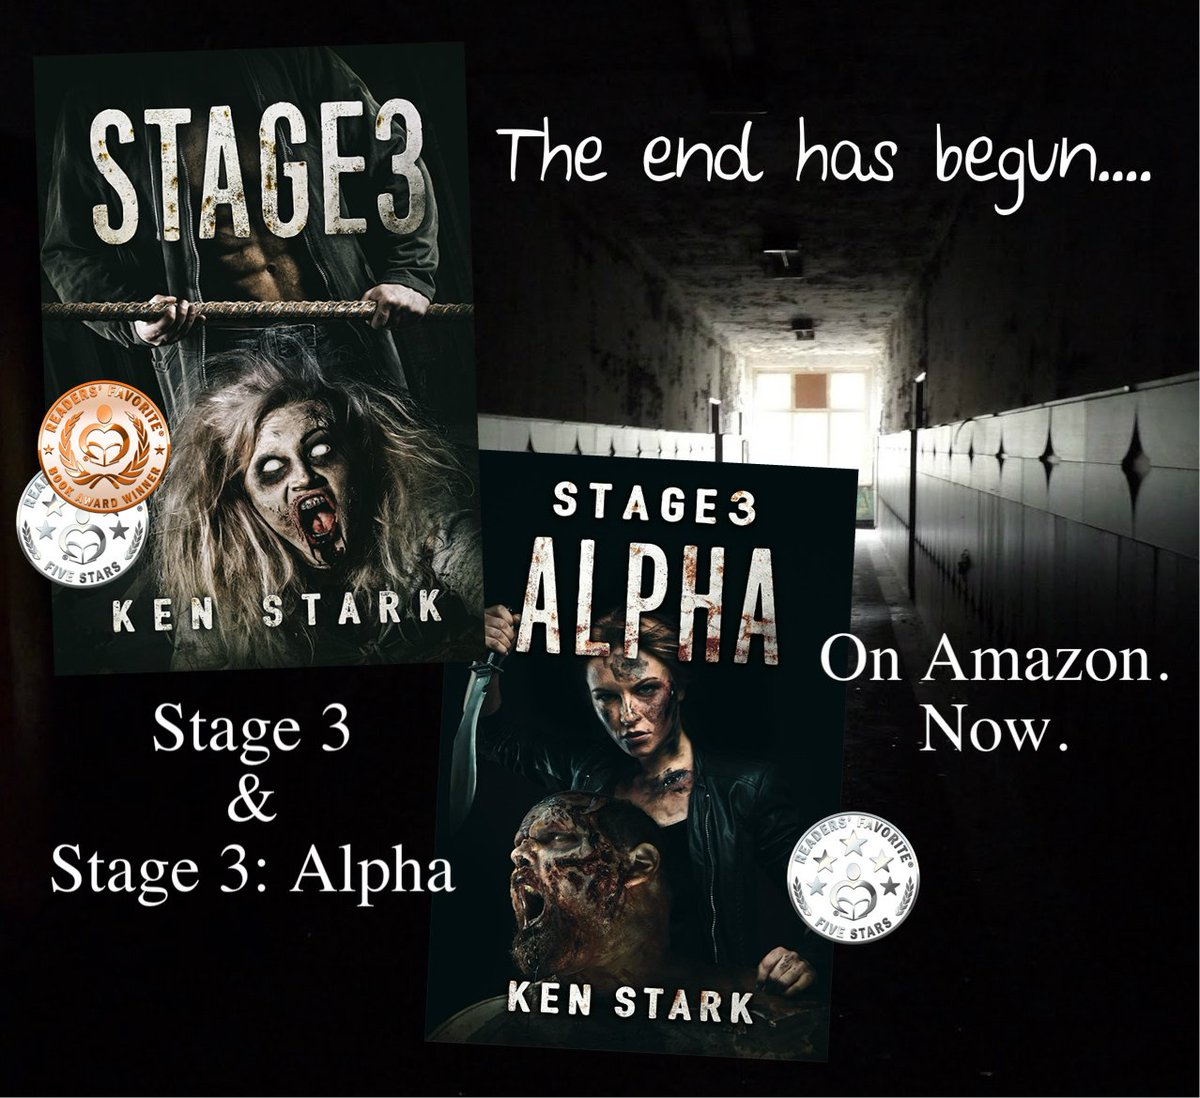 The storm of madness raged, and the world was torn apart.  #horror #zombie #thriller #series  http://www. amazon.com/dp/B01CYITYOS  &nbsp;    http://www. amazon.com/dp/B072WNGG7W  &nbsp;  <br>http://pic.twitter.com/S0tpayyvS8